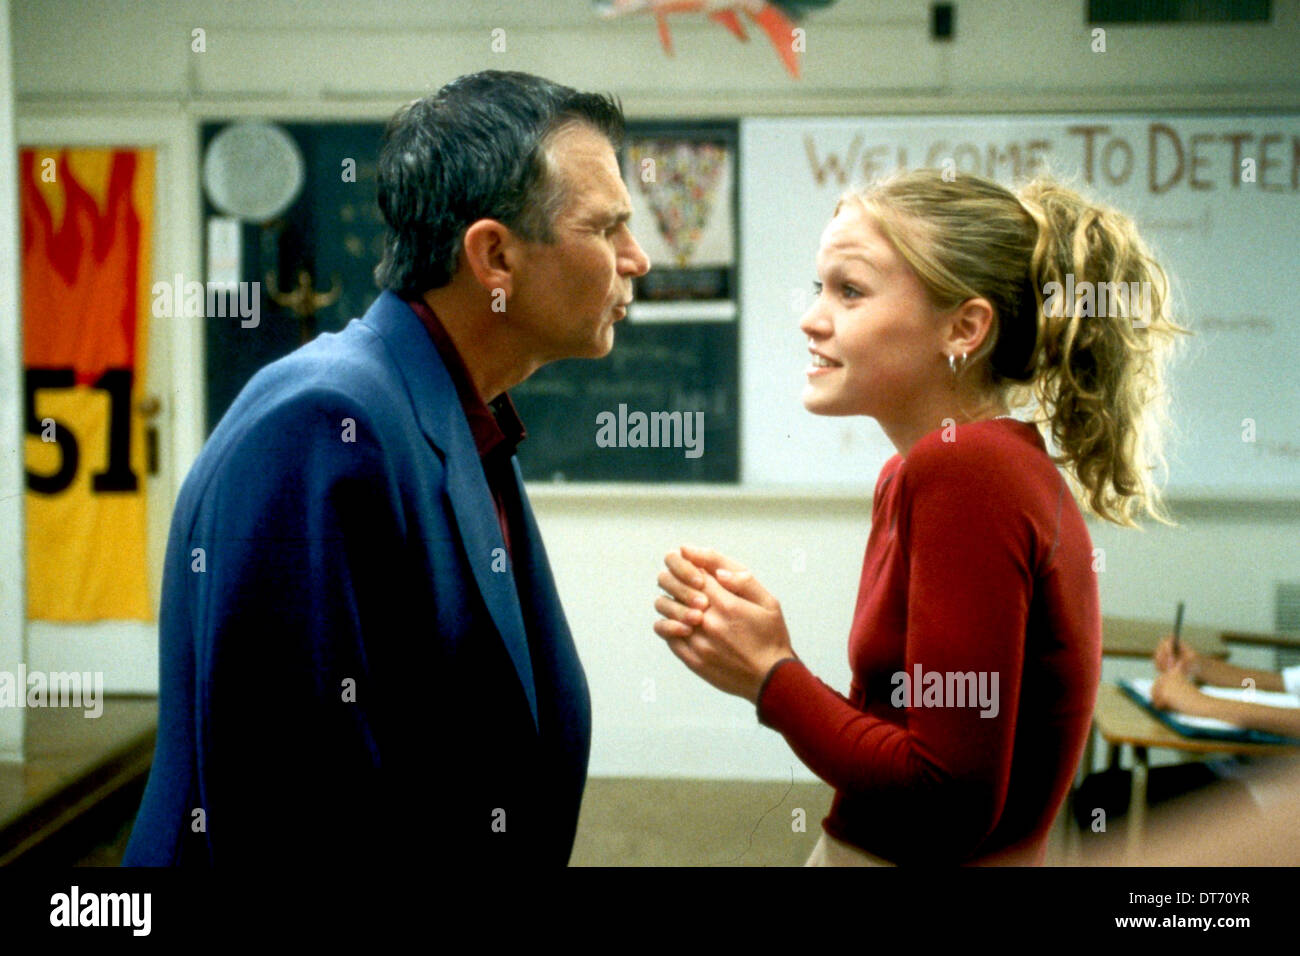 10 Things I Hate About You 1999: DAVID LEISURE & JULIA STILES 10 THINGS I HATE ABOUT YOU